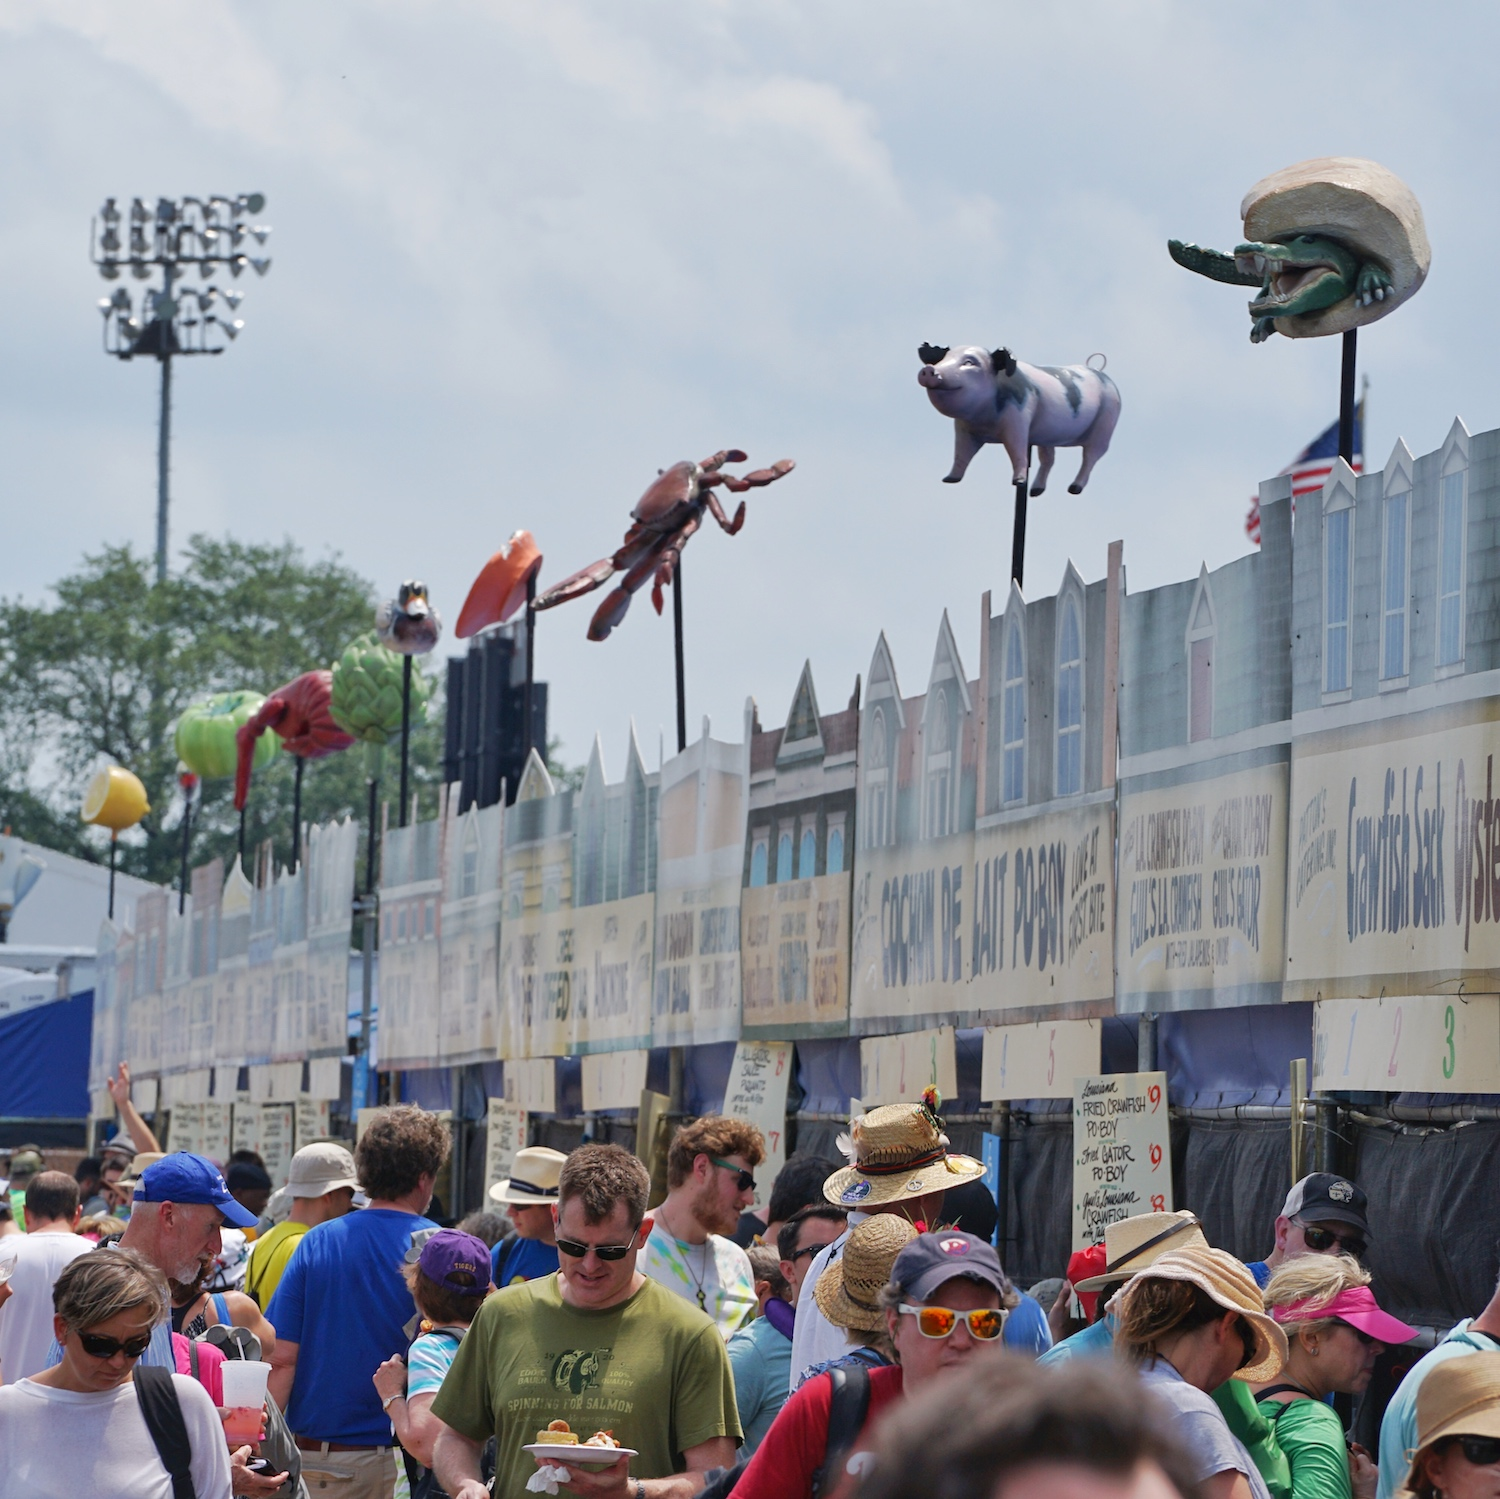 NOLA History: The New Orleans Jazz and Heritage Festival